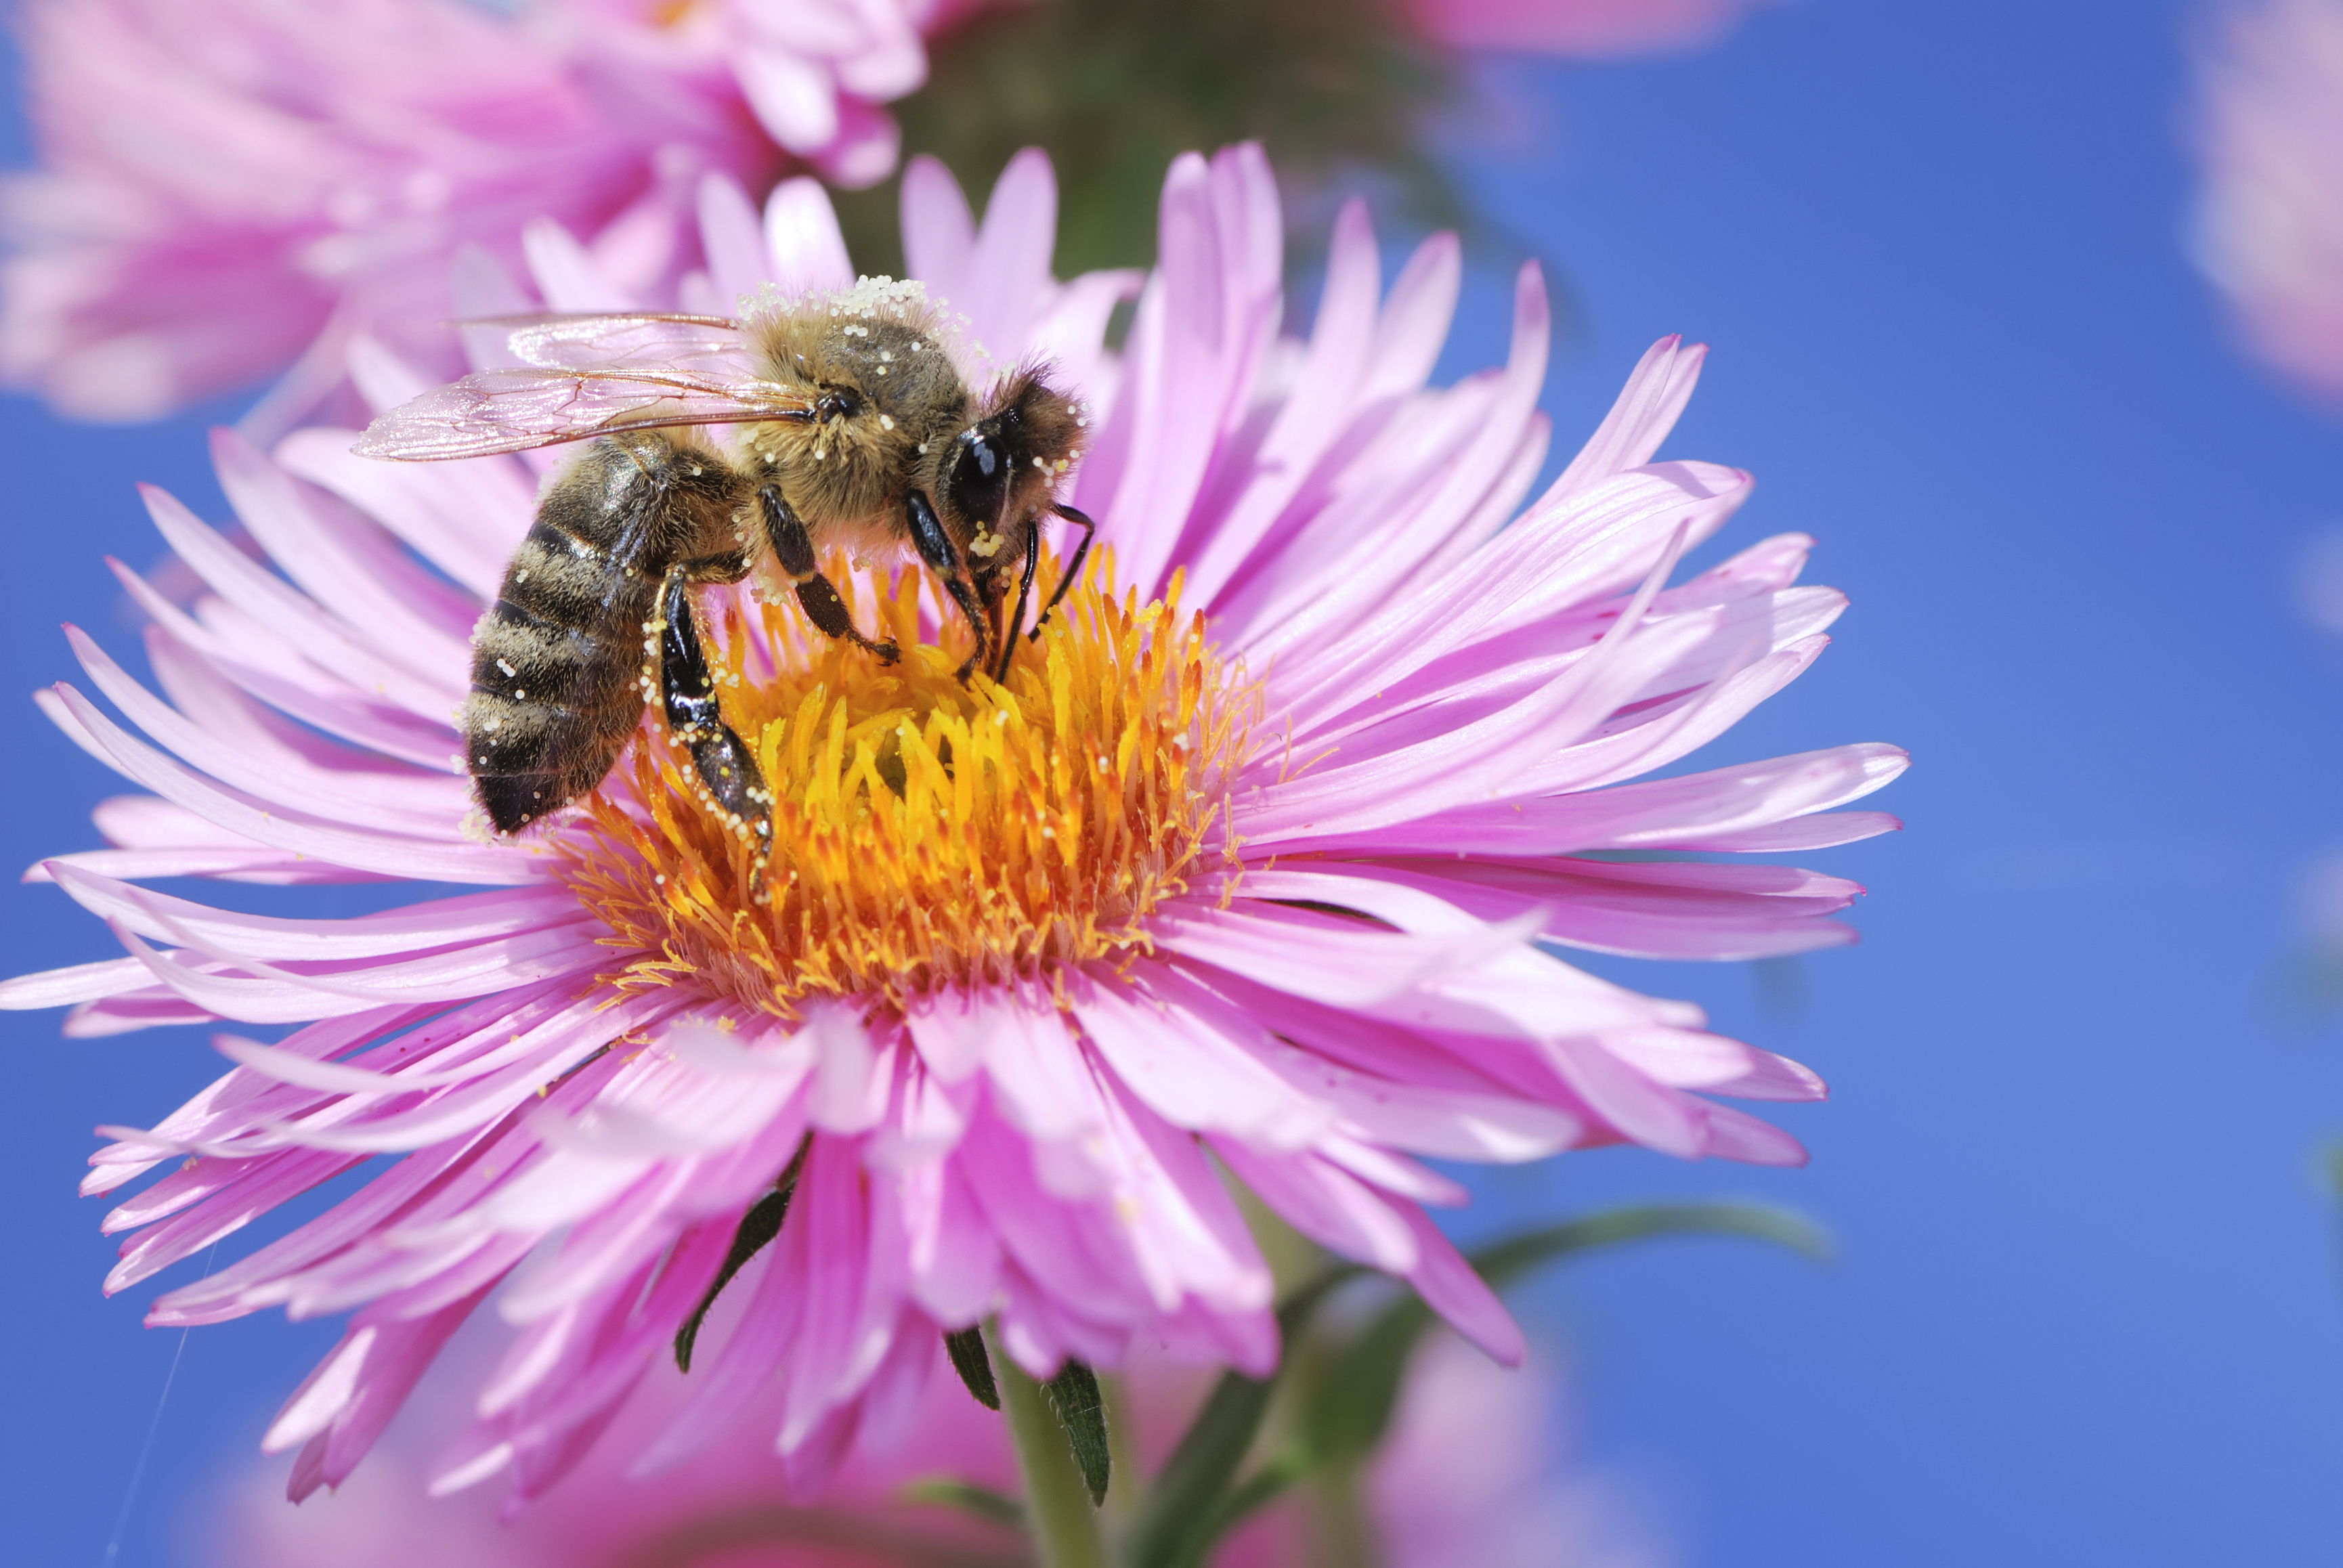 Aster flower with bee